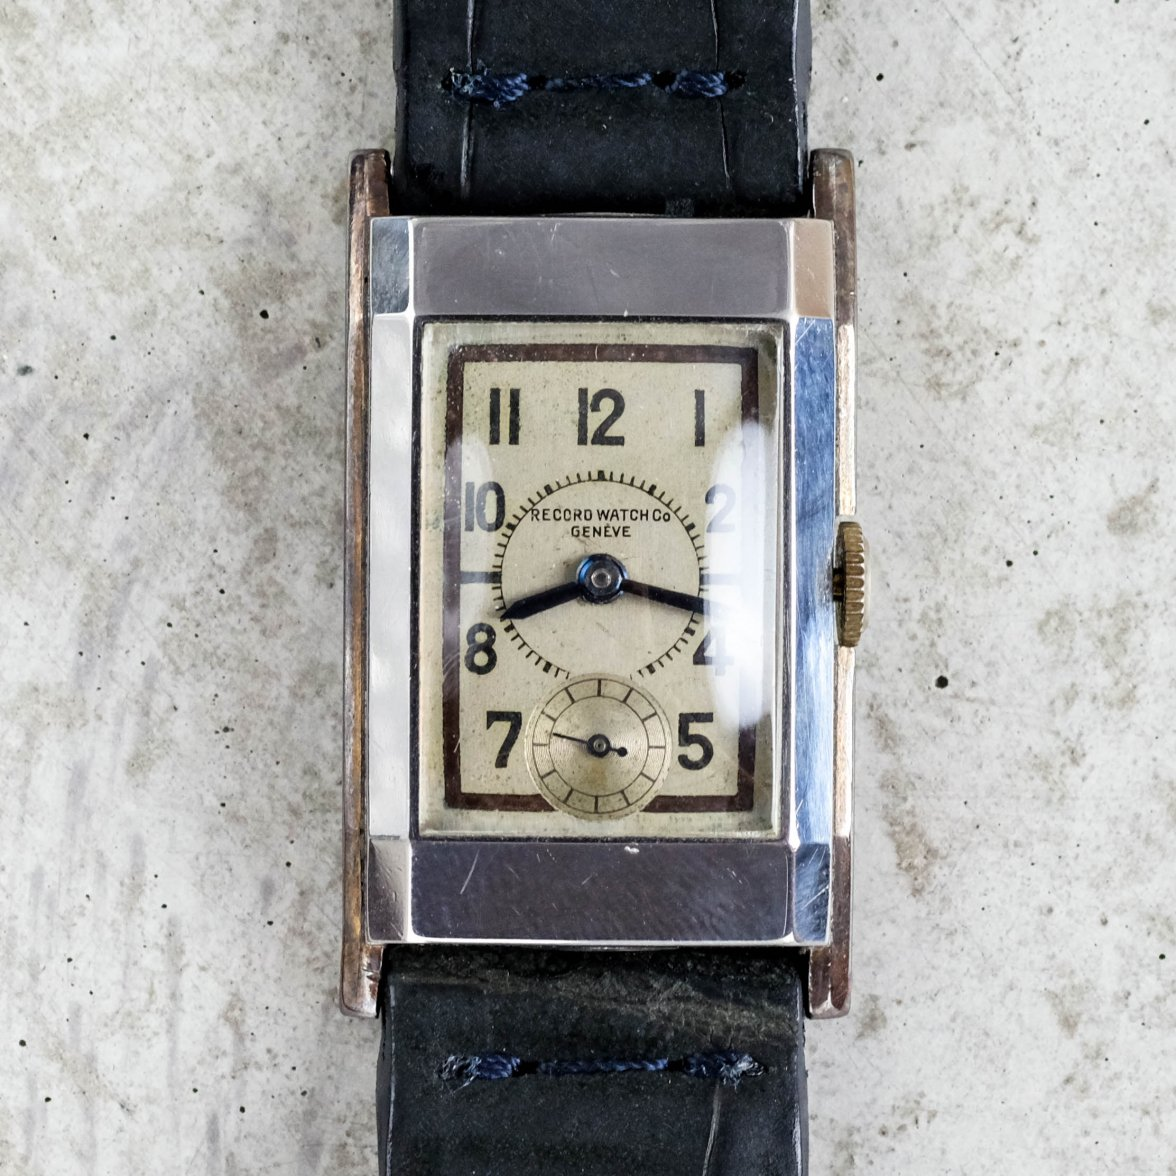 SOLD - Record Watch